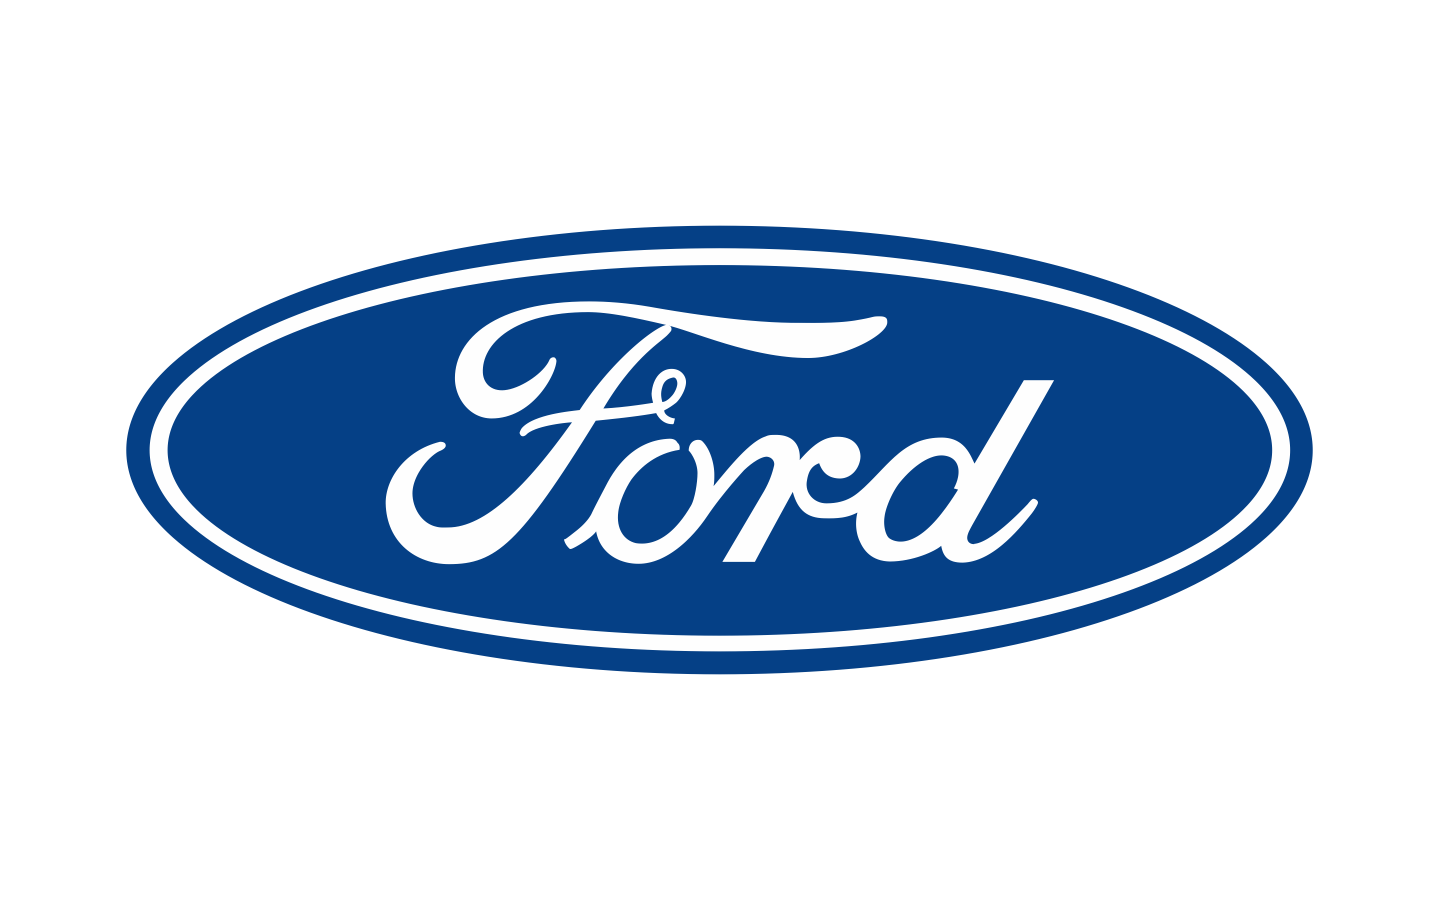 Ford copyrighted logo